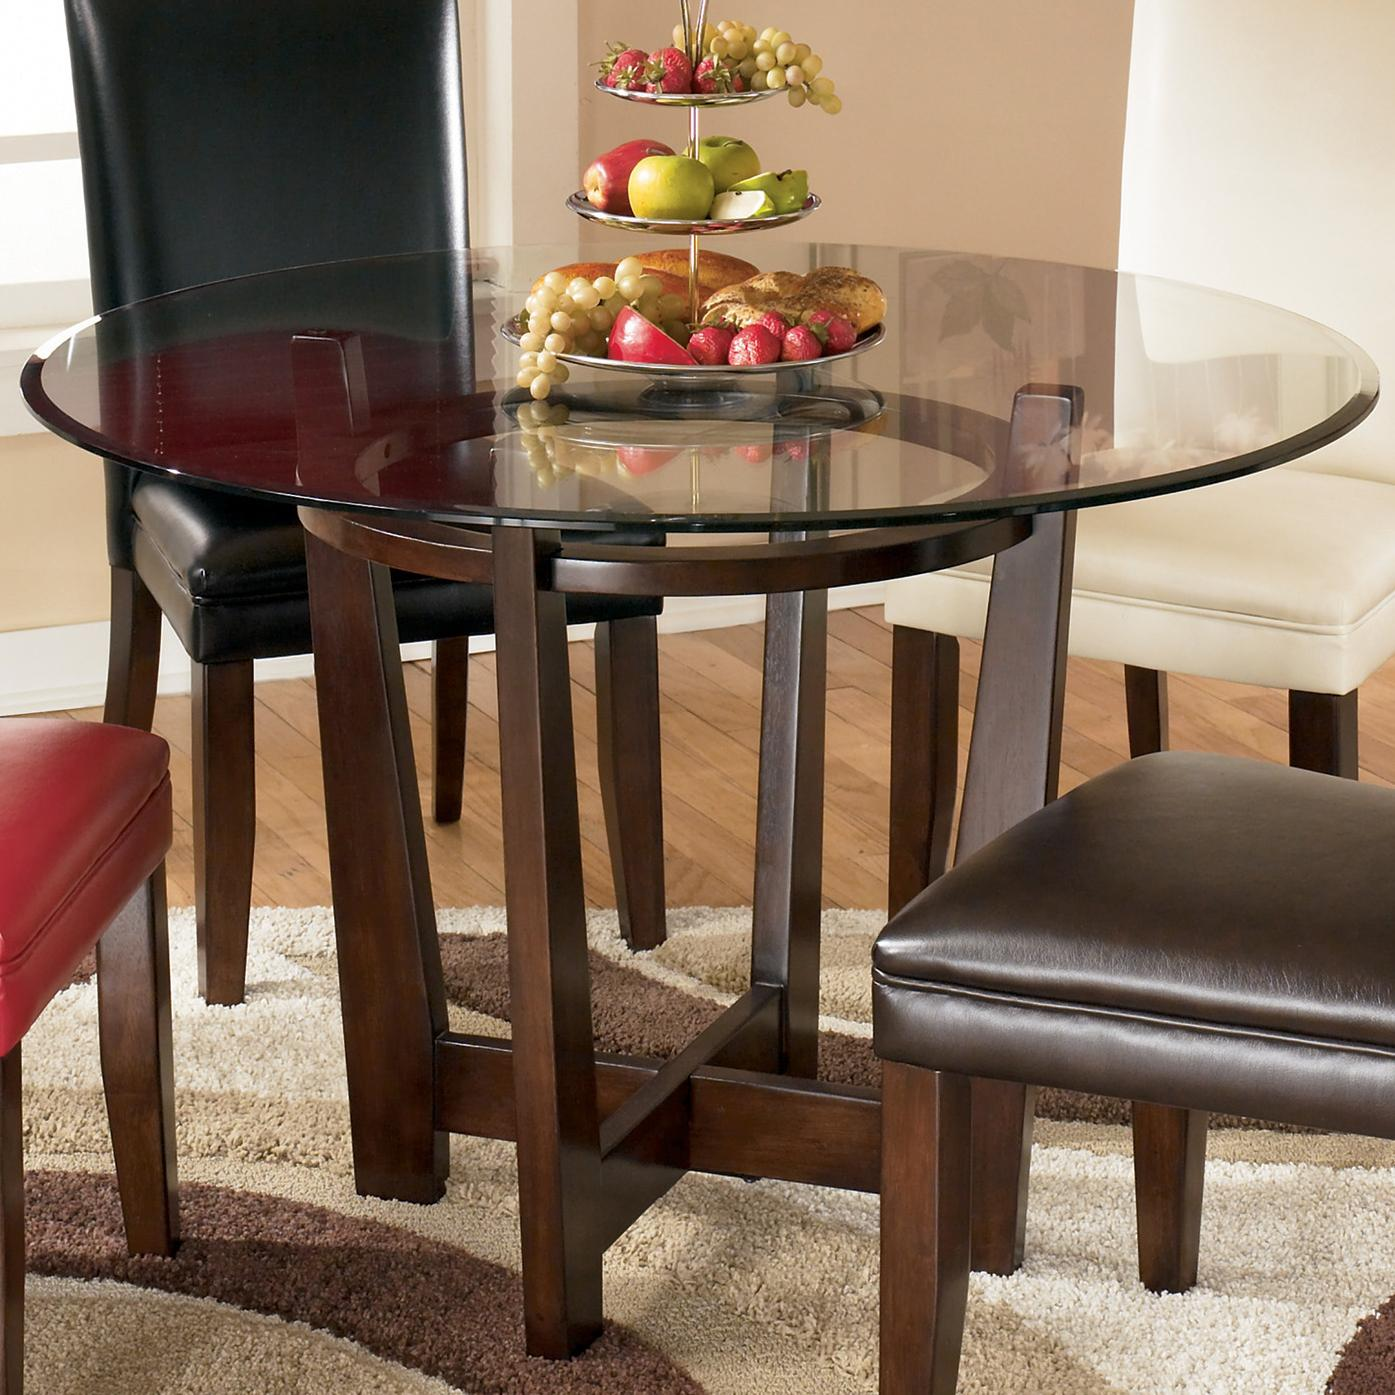 signature design by ashley charrell d357 15 round glass top table household furniture. Black Bedroom Furniture Sets. Home Design Ideas